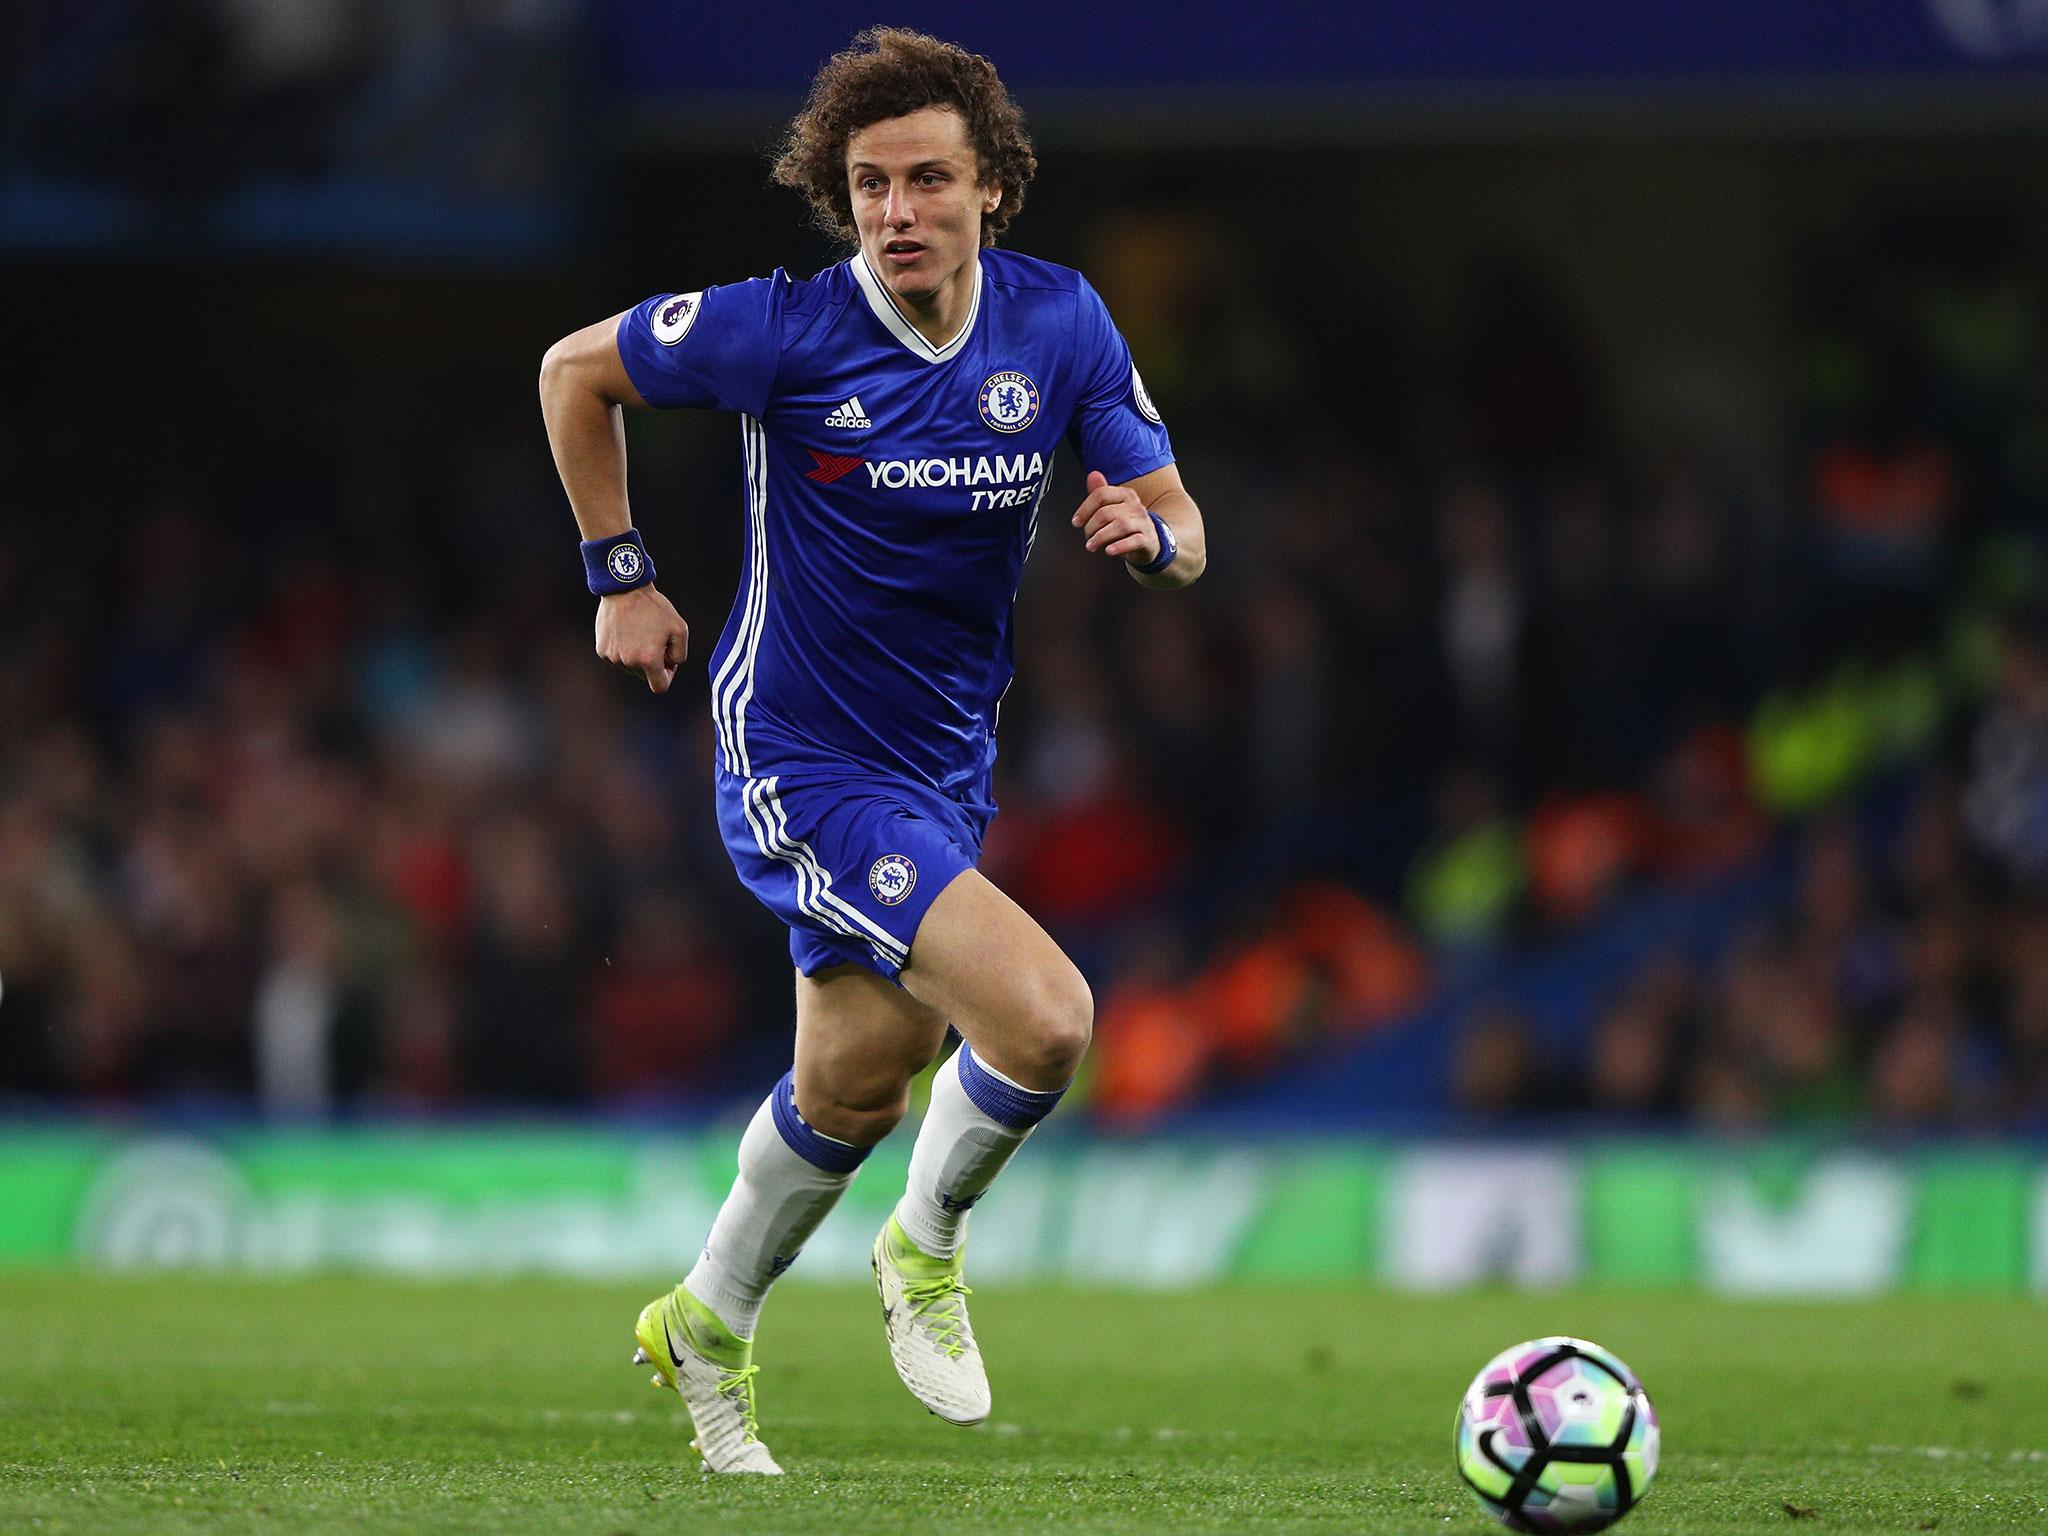 David Luiz spends more than £1m on luxury supercar gifts for title-winning Chelsea teammates